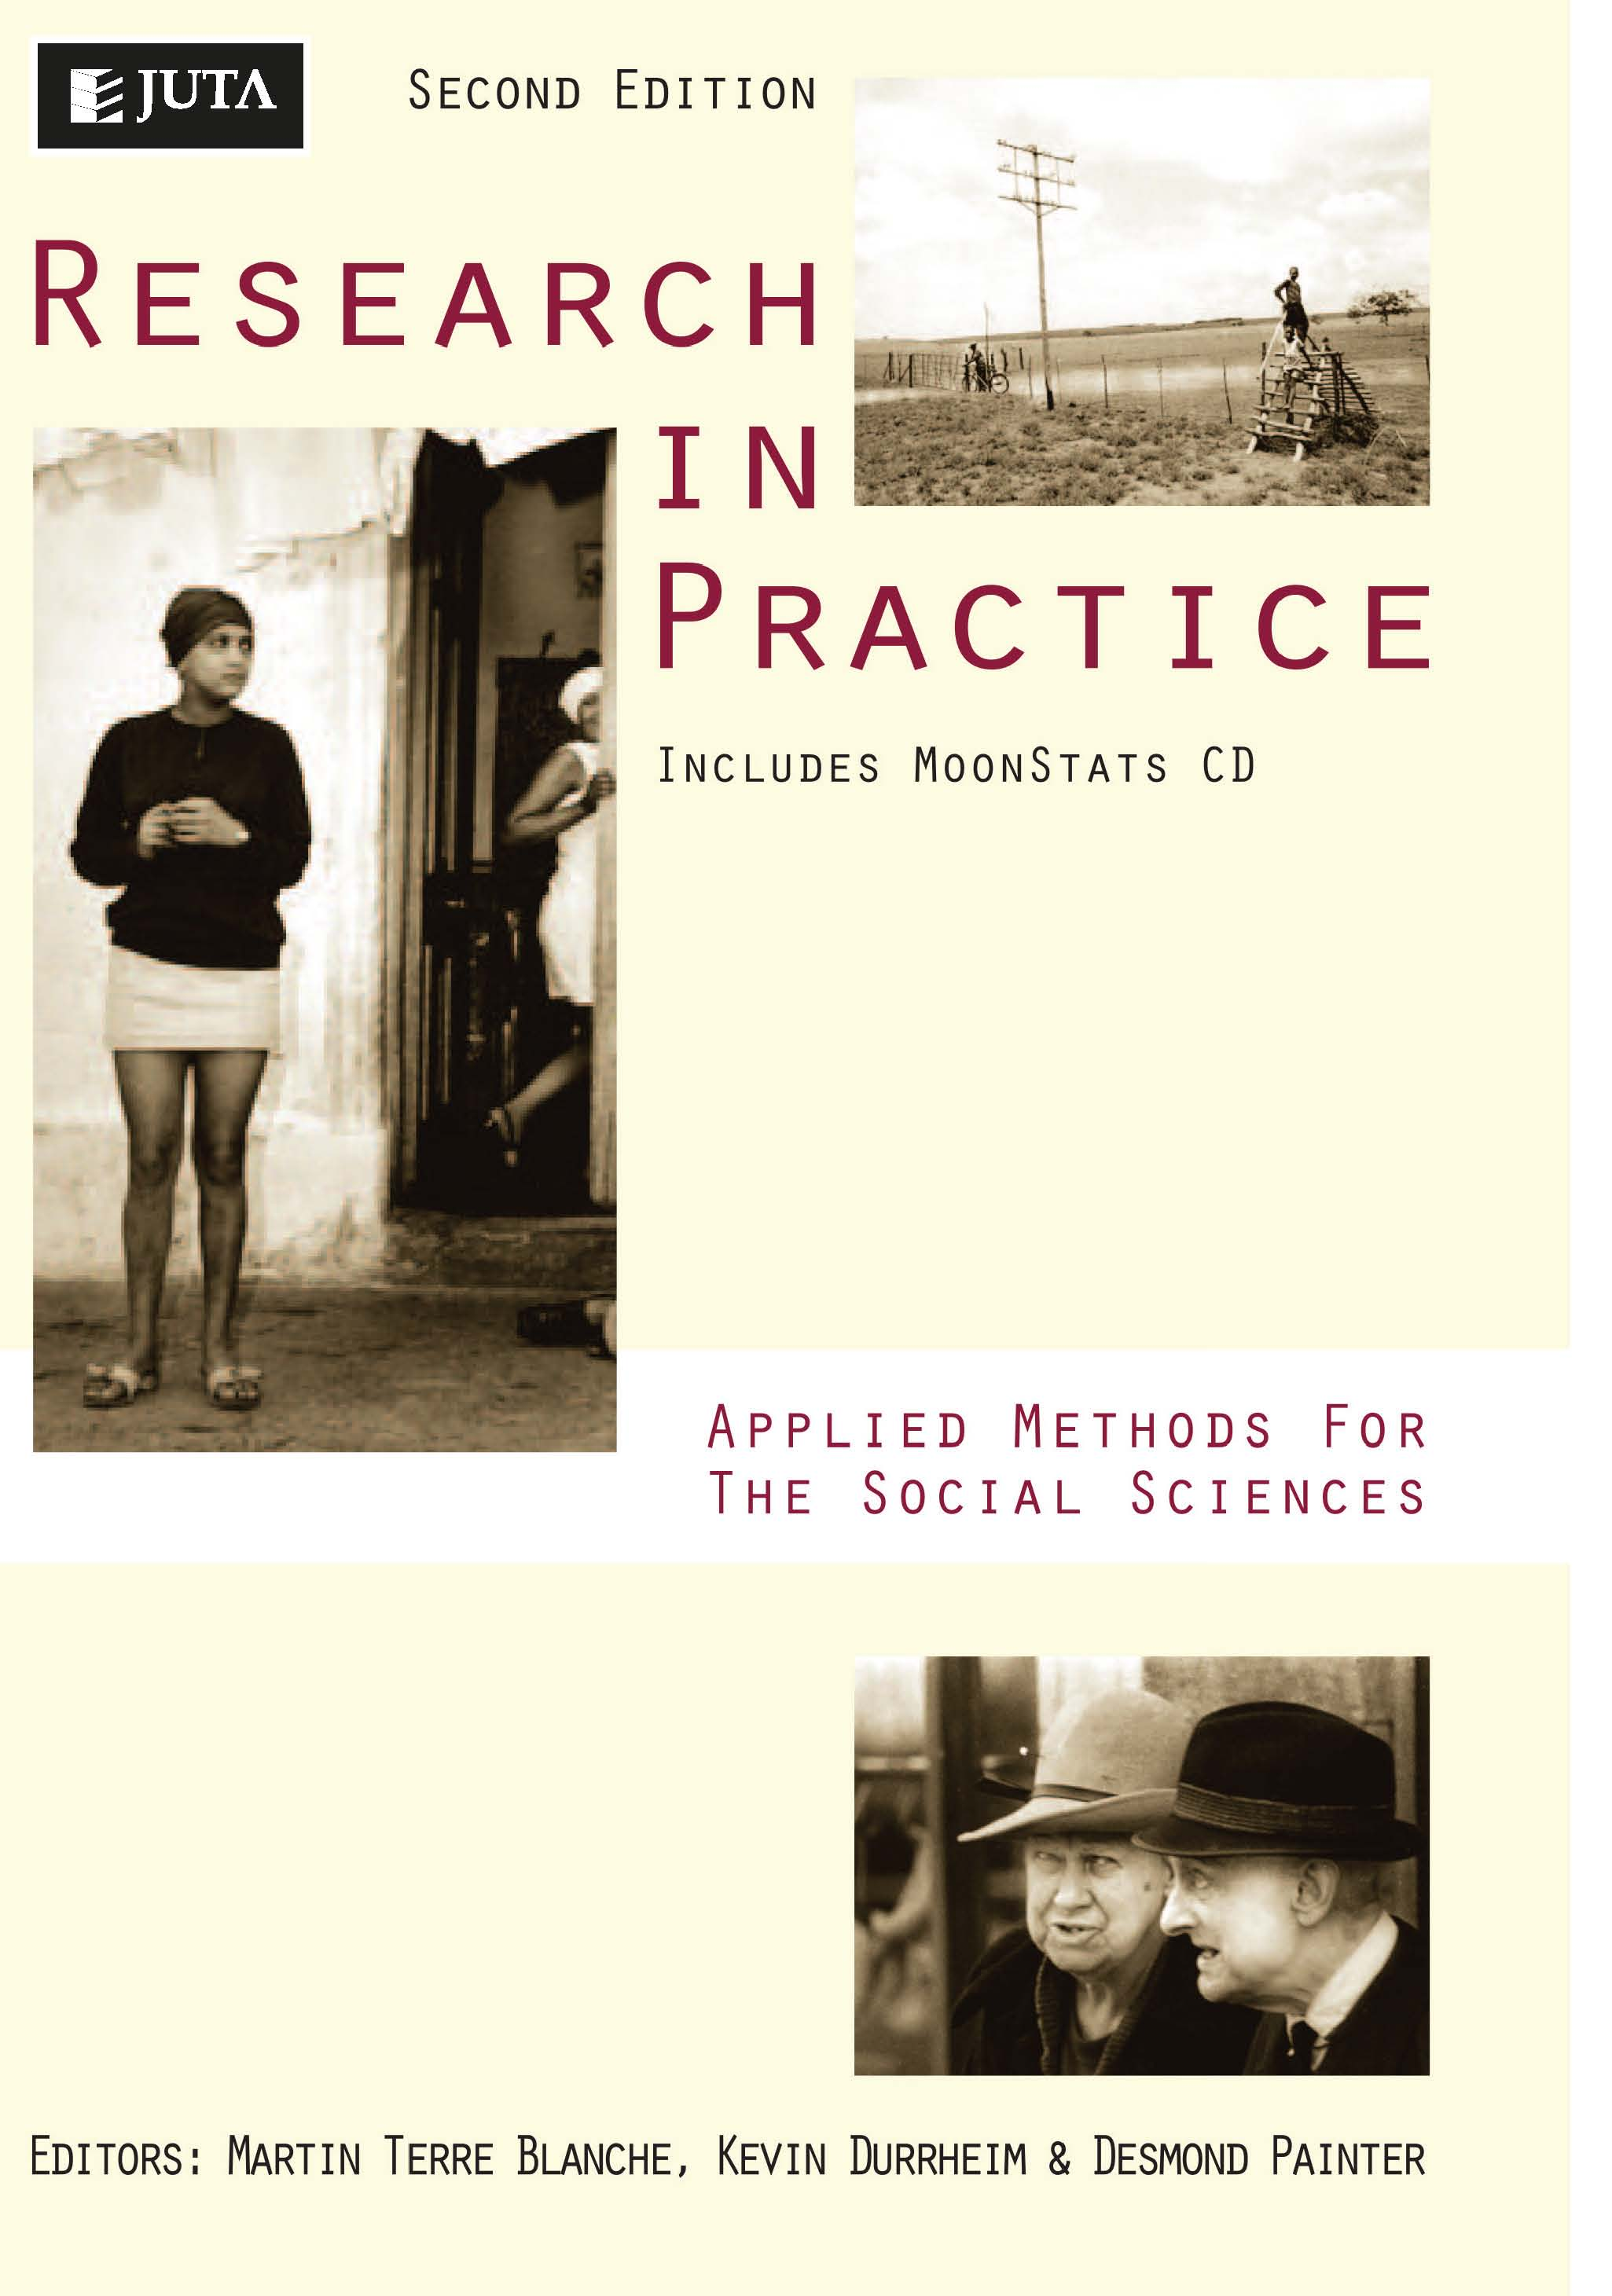 Research in practice 2e juta academic images research in practice soft cover 9781485102687 608 pages 2nd edition fandeluxe Images